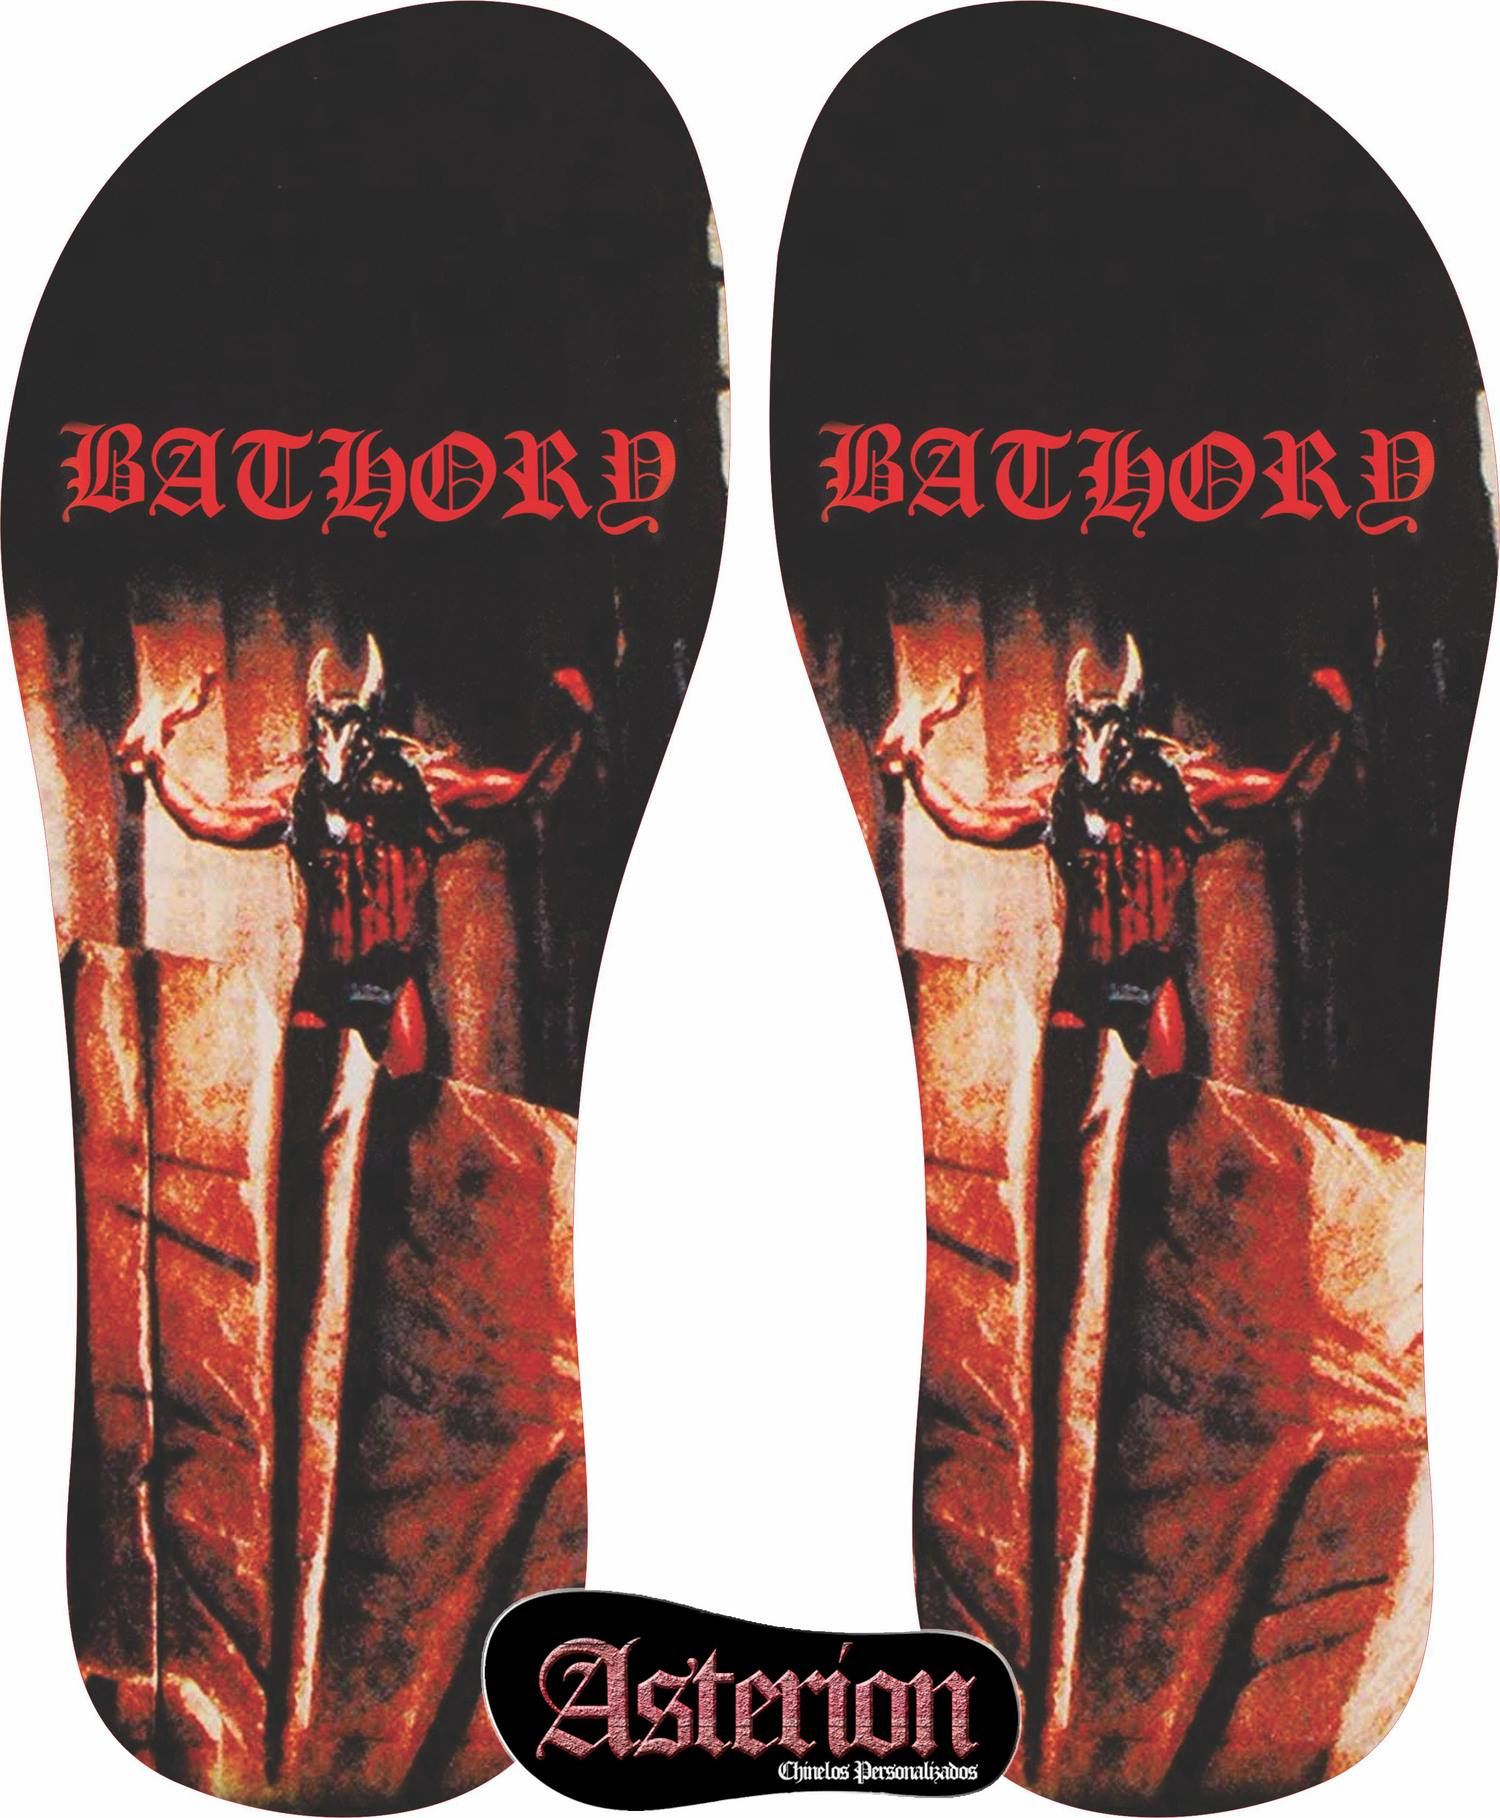 Chinelo Bathory  – Asterion Chinelos Personalizados